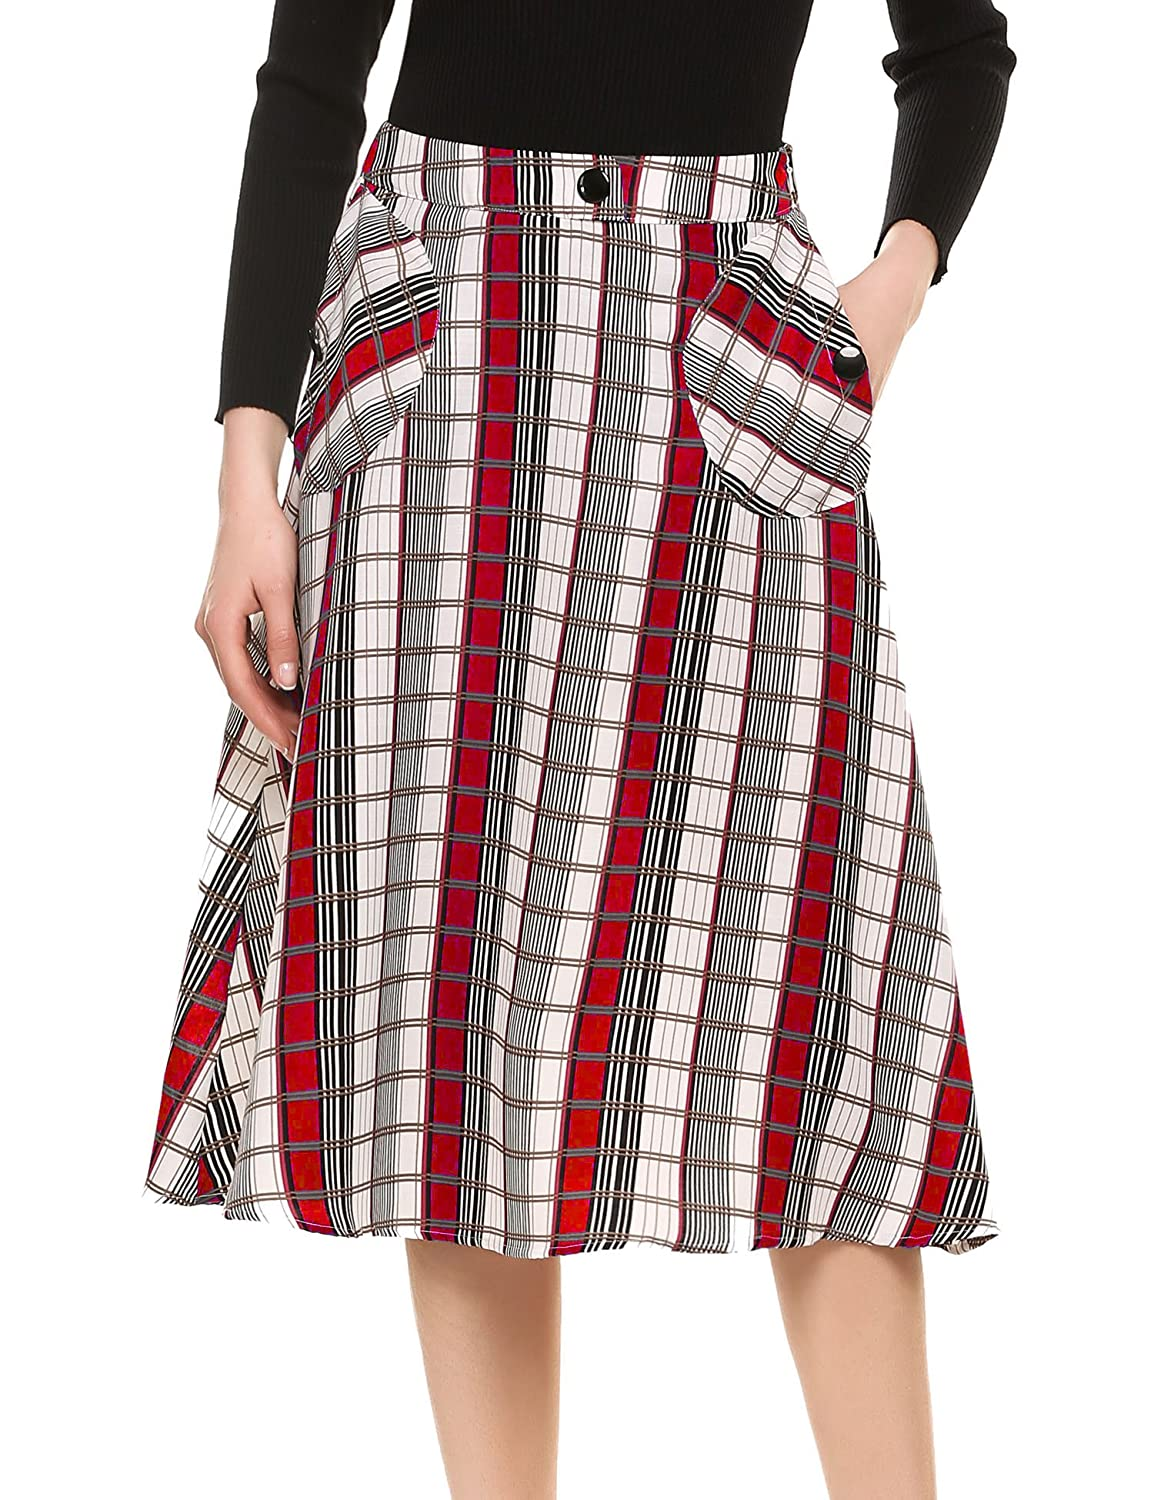 1960s Style Skirts Meaneor Women Elegant A-Line Skirts High Waist Plaid Skirts With Two Side Big Pockets $22.99 AT vintagedancer.com